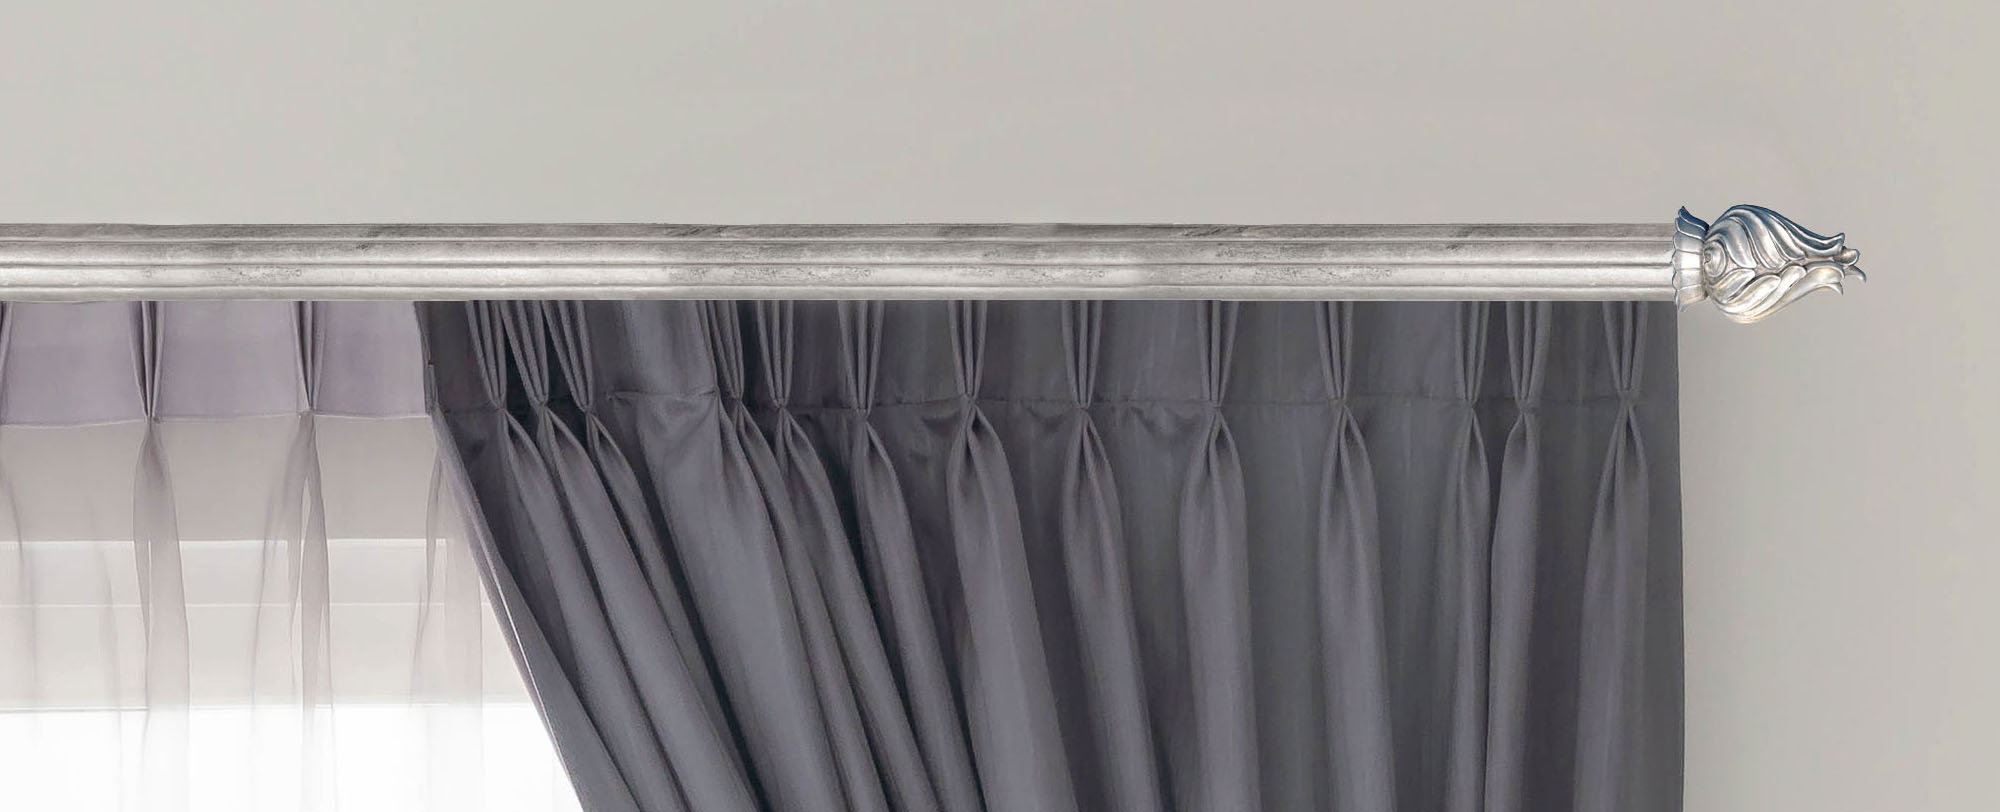 The Traverse Rods Collection Tms Menagerie Window Treatment Drapery Hardware For Interior Design